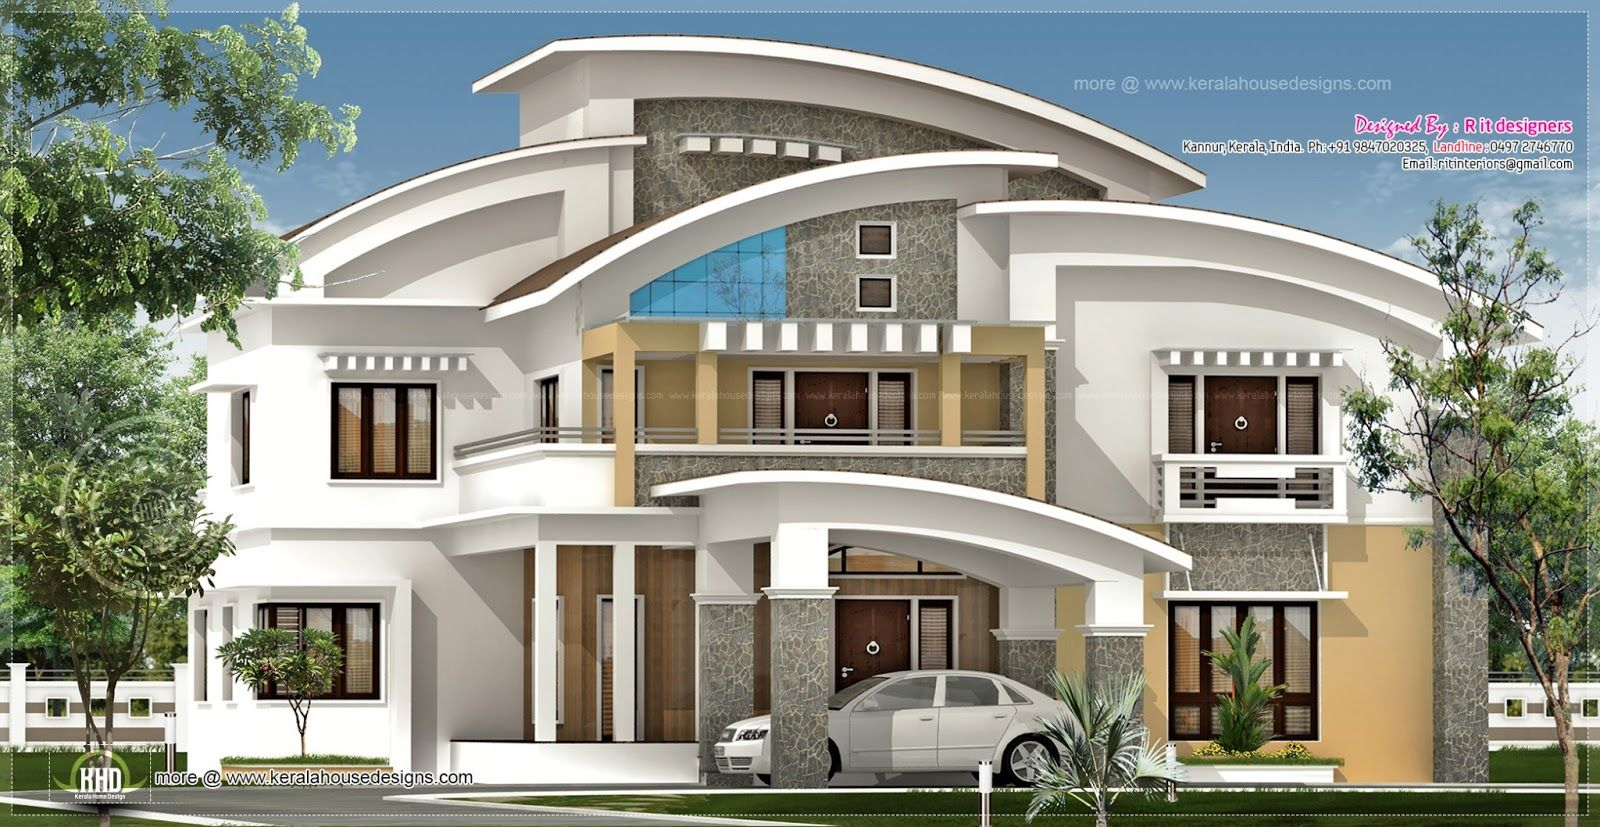 Awesome luxury homes plans 8 french country luxury home for House front design